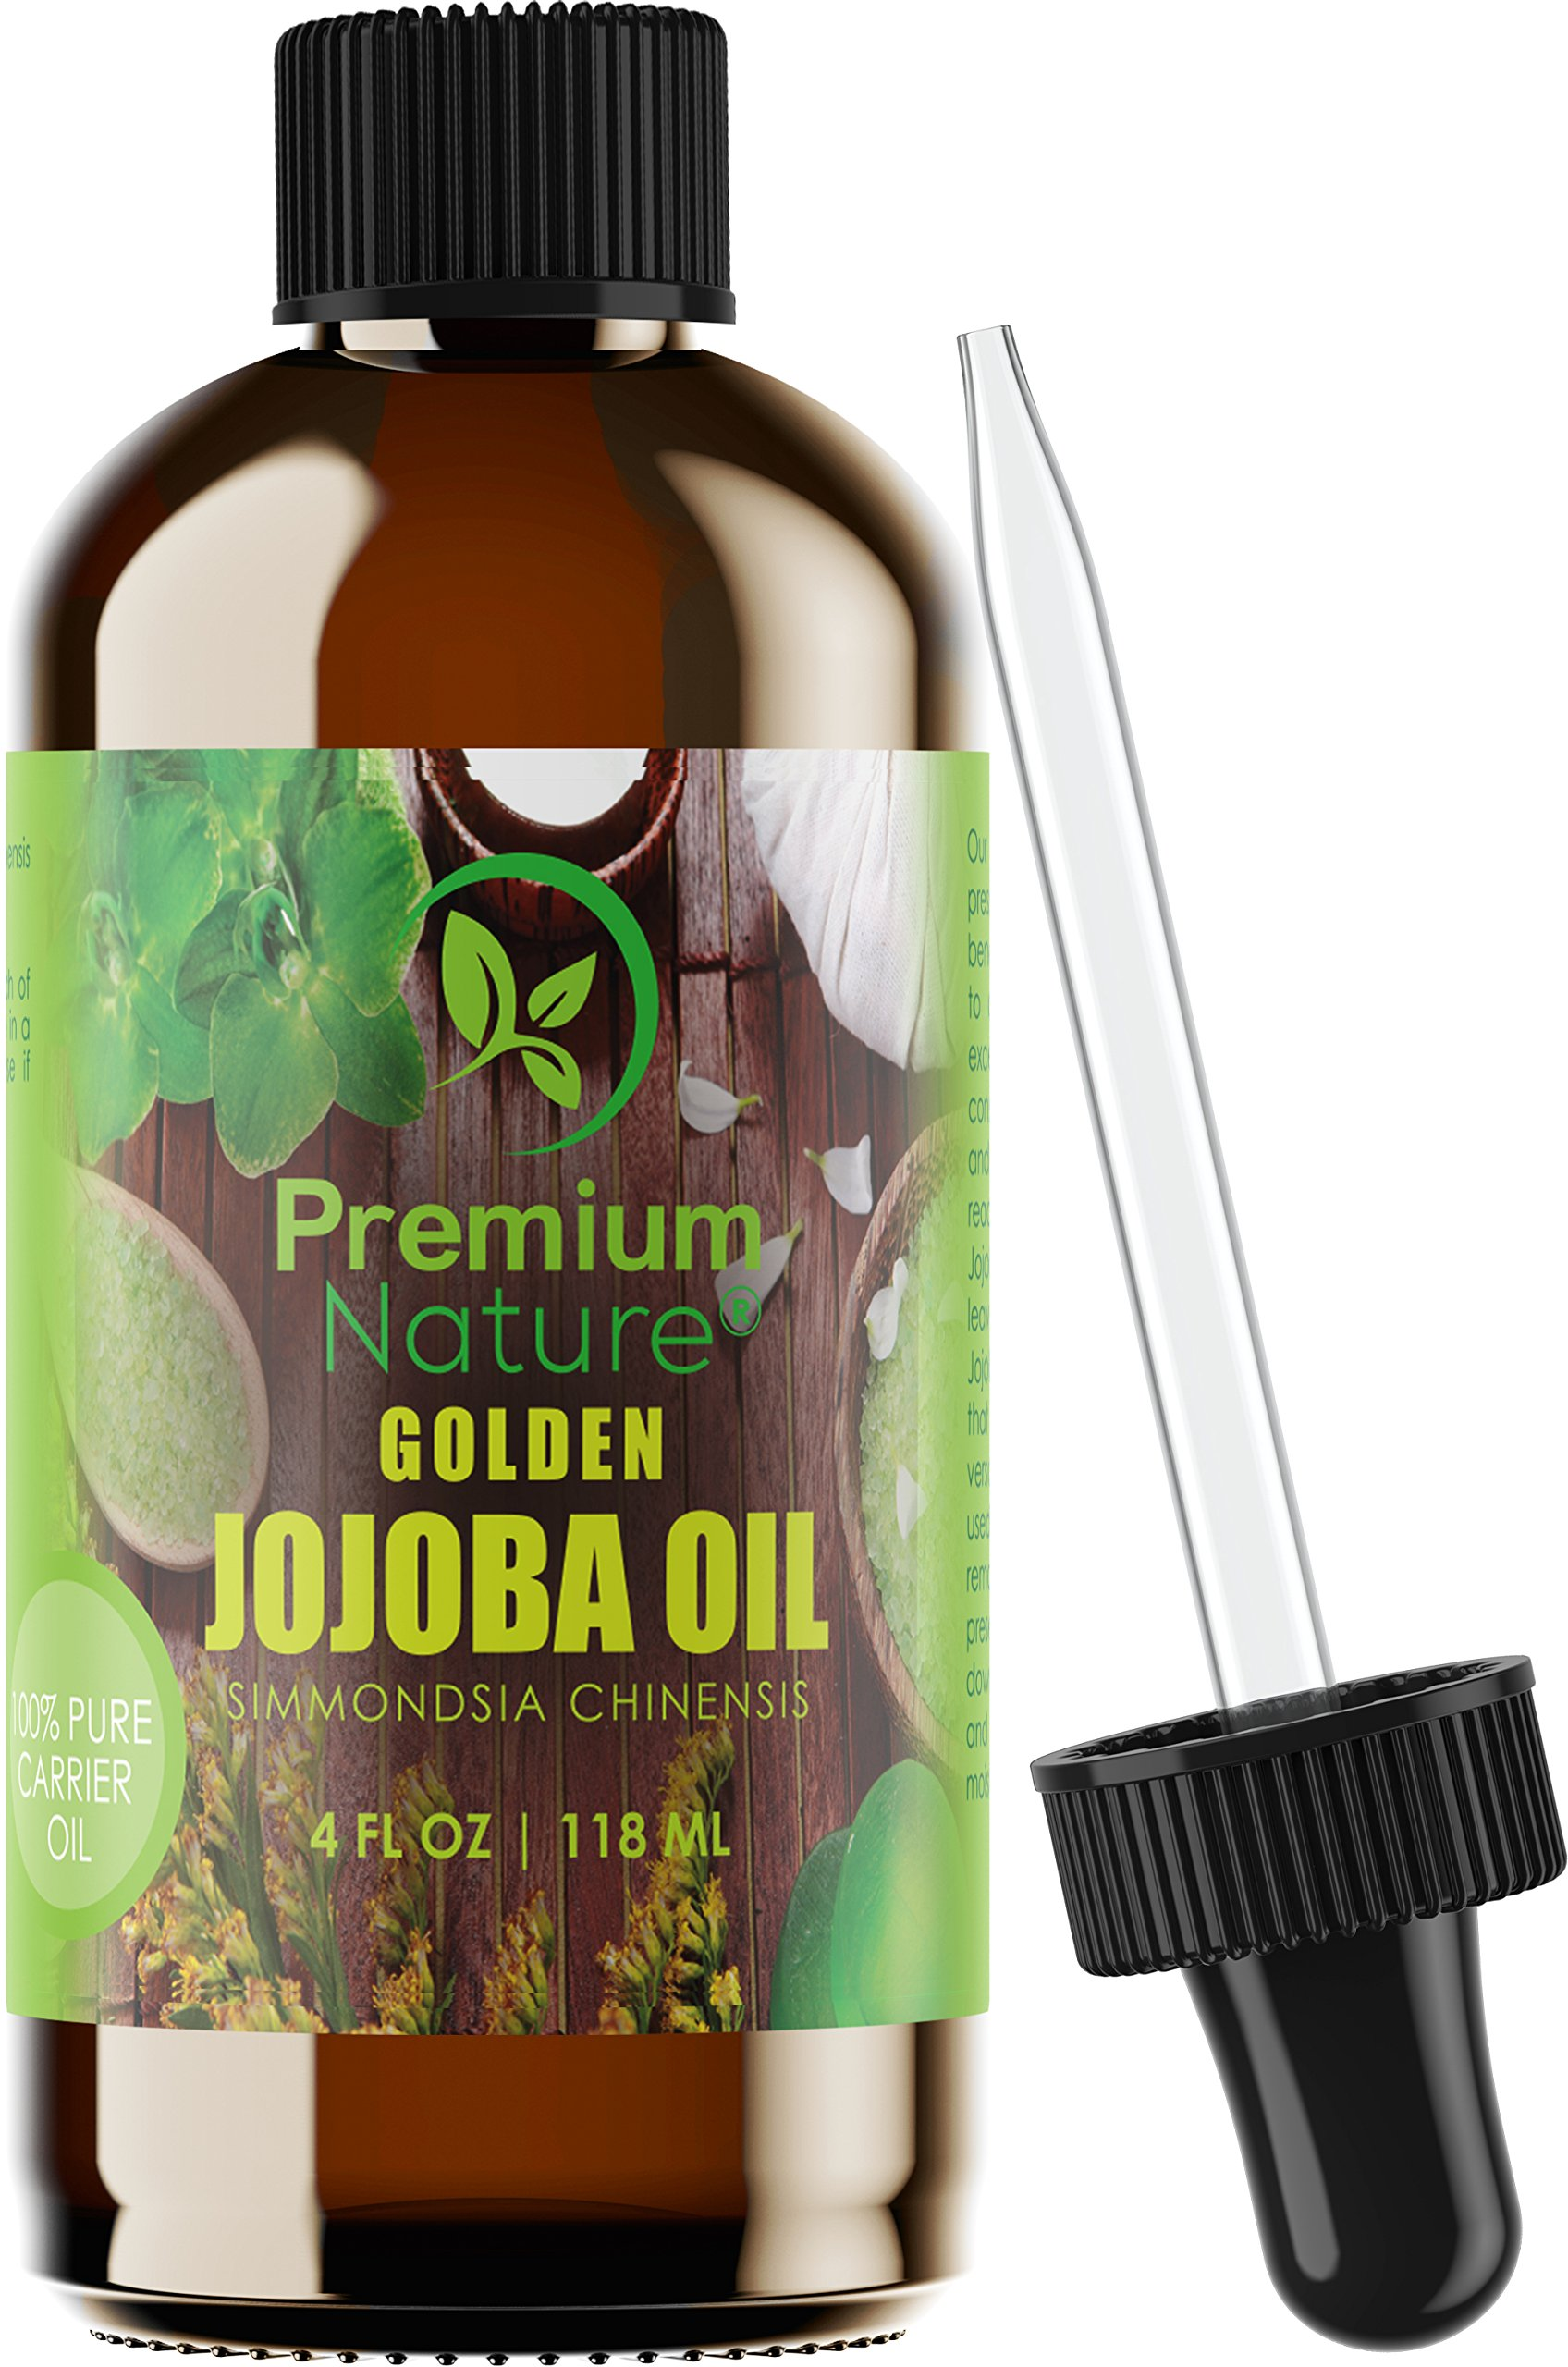 Golden Jojoba Oil Pure Natural - 4 oz Cold-Pressed Unrefined Natural Oil For Essential Oils -Facial Cleaner Face Hair Nails & Skin Remove Makeup - Hypoallergenic & Anti-Inflammatory - Premium Nature